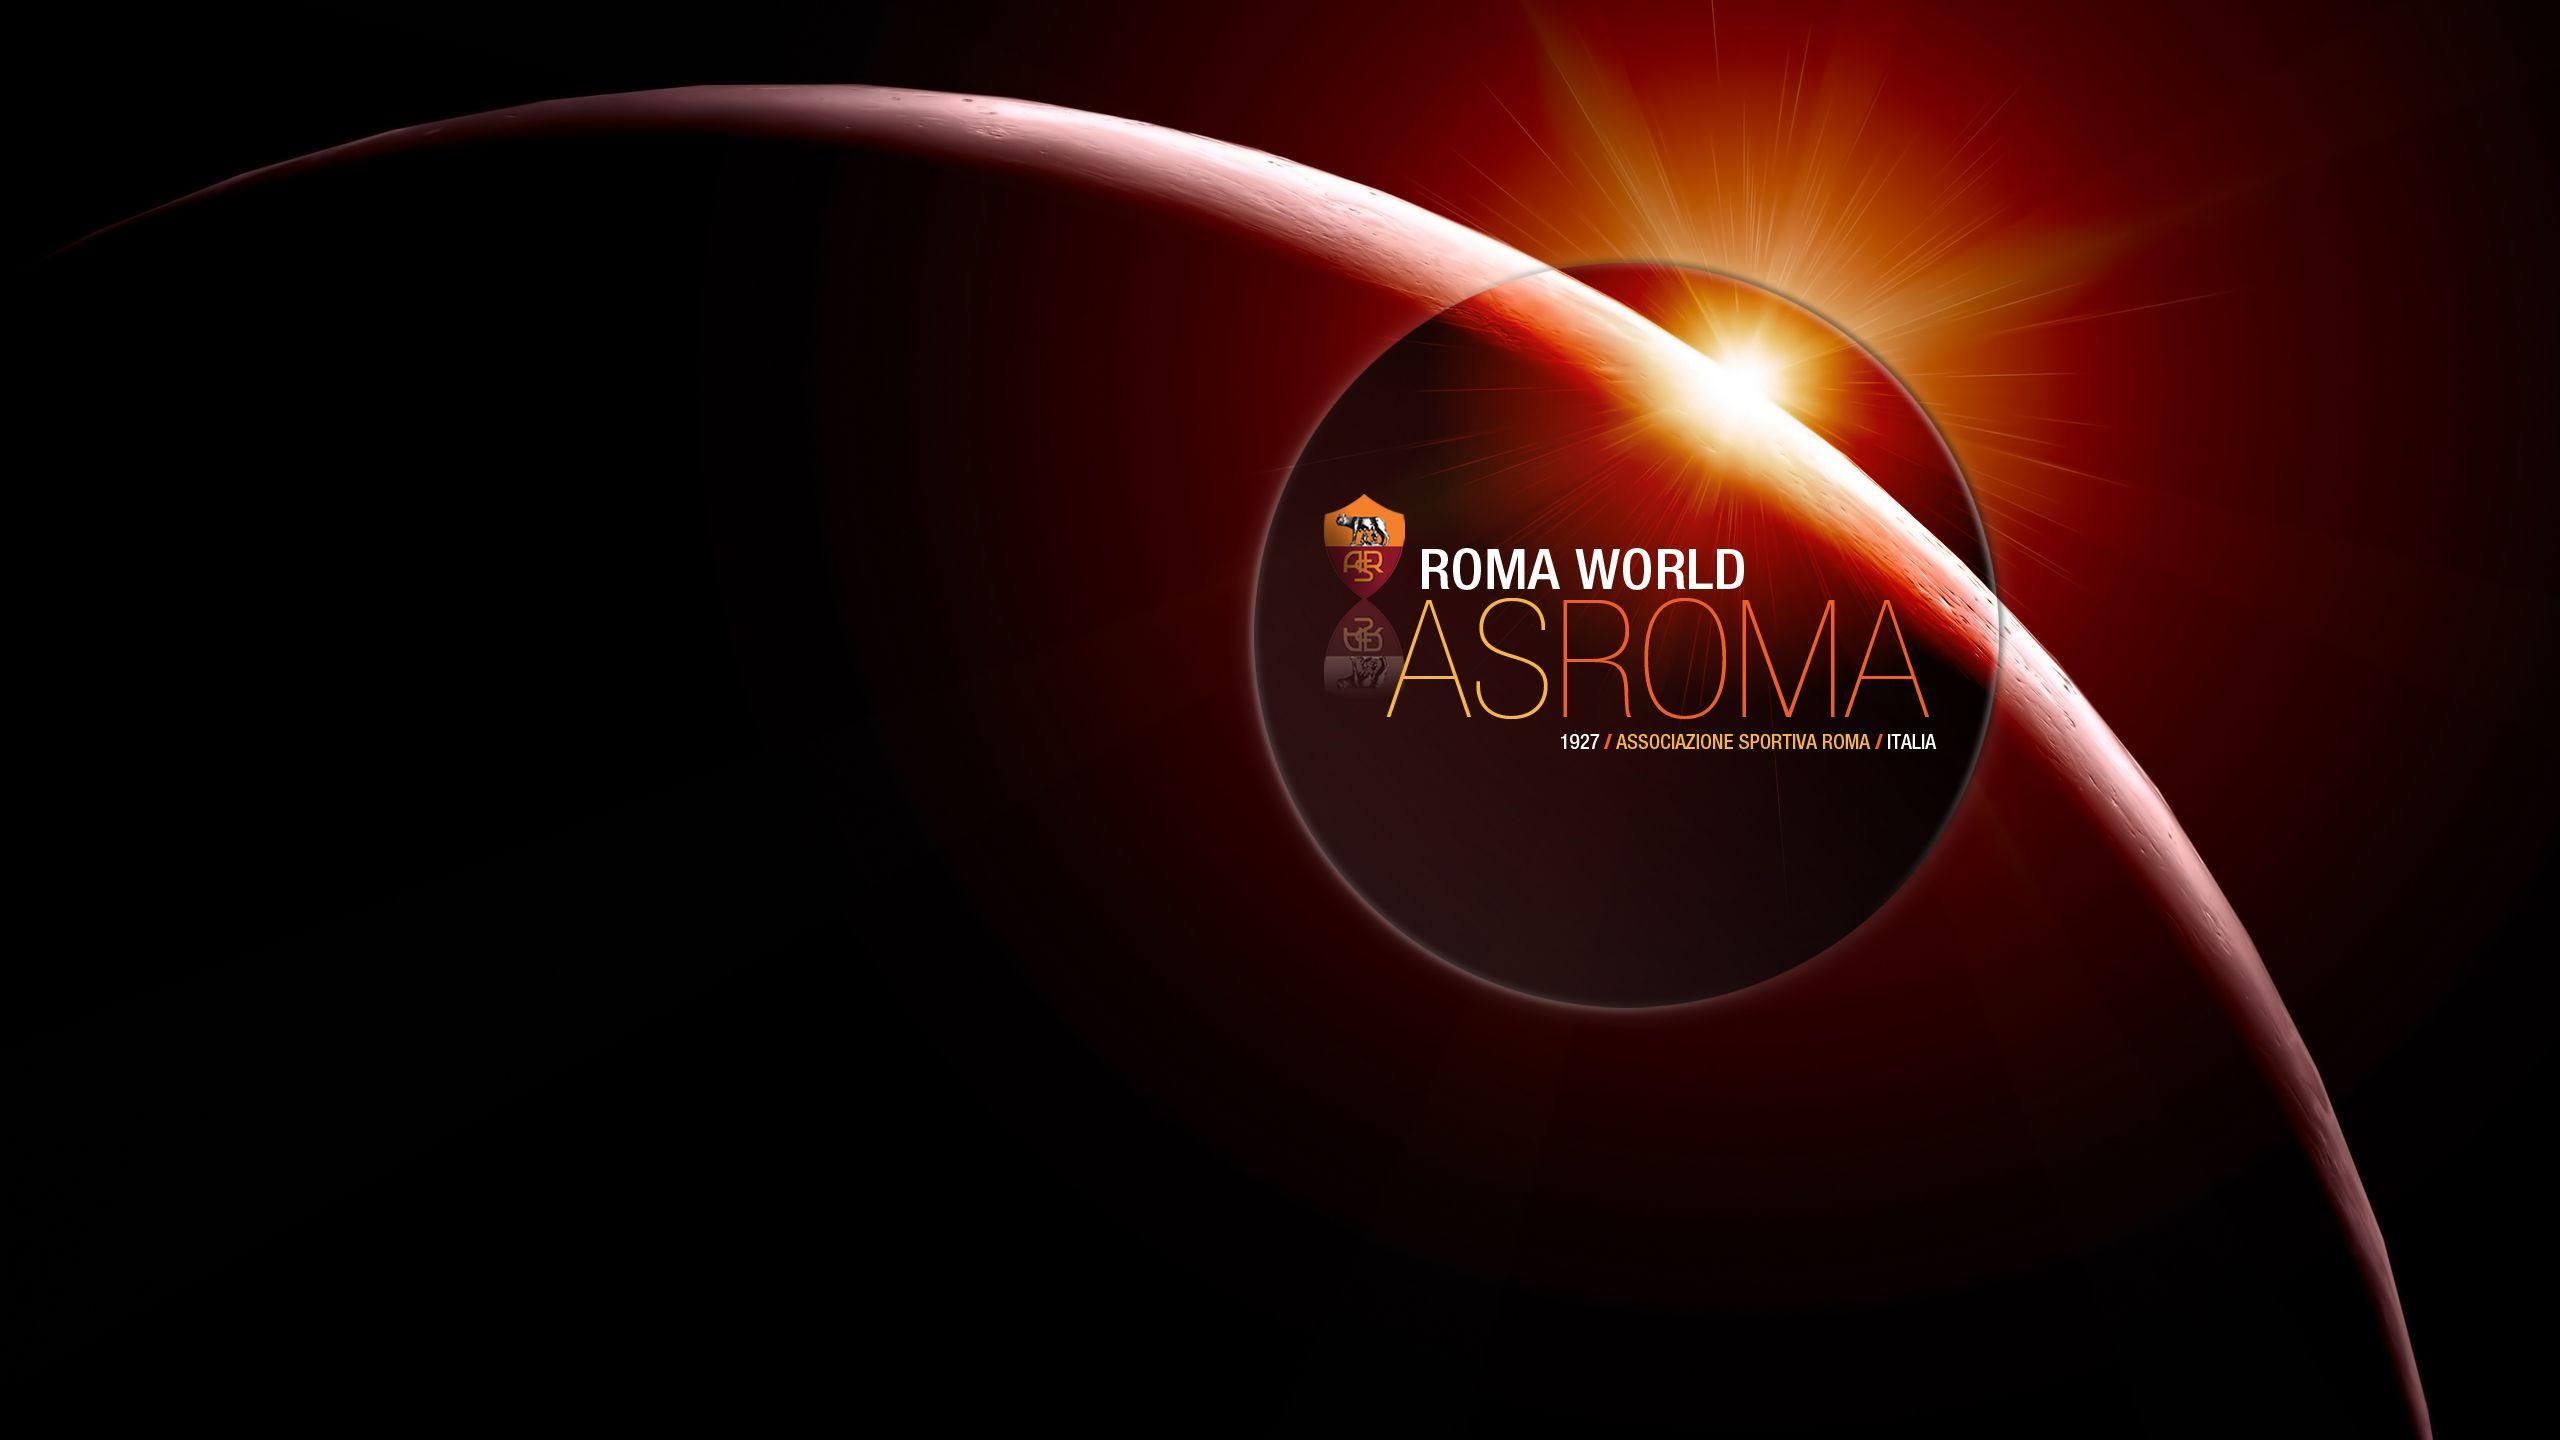 As Roma Logo Wallpapers Free Download